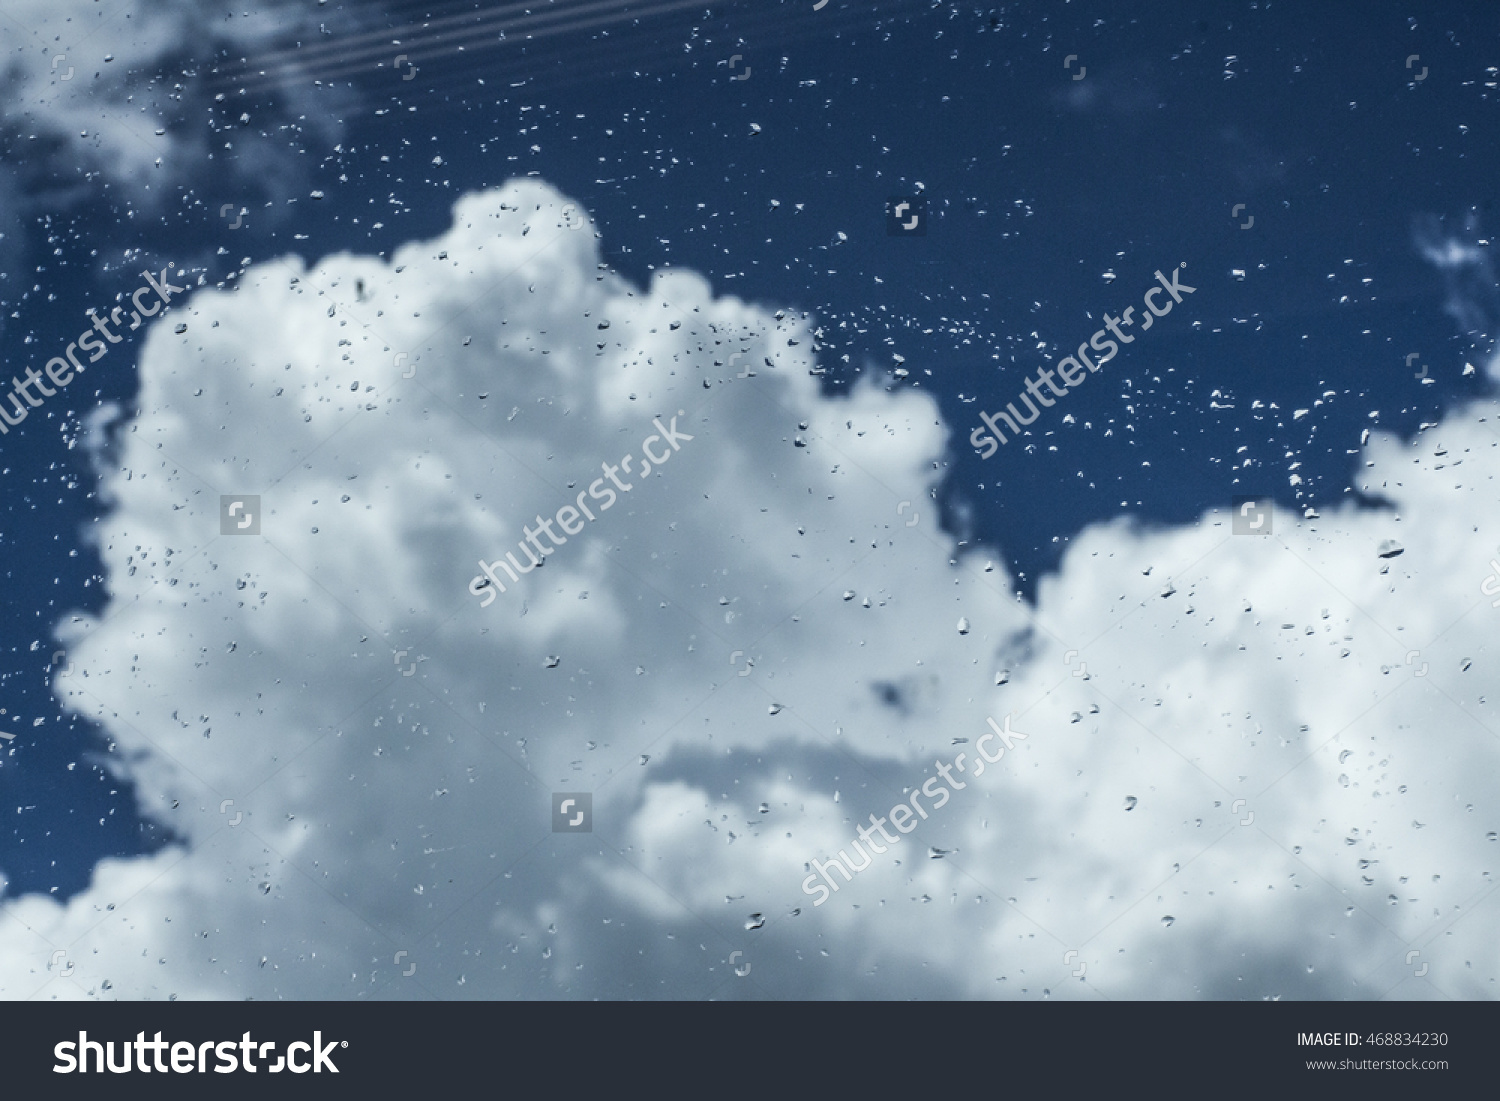 stock-photo-rainy-sky-with-white-clouds-and-raindrops-on-the-window-468834230